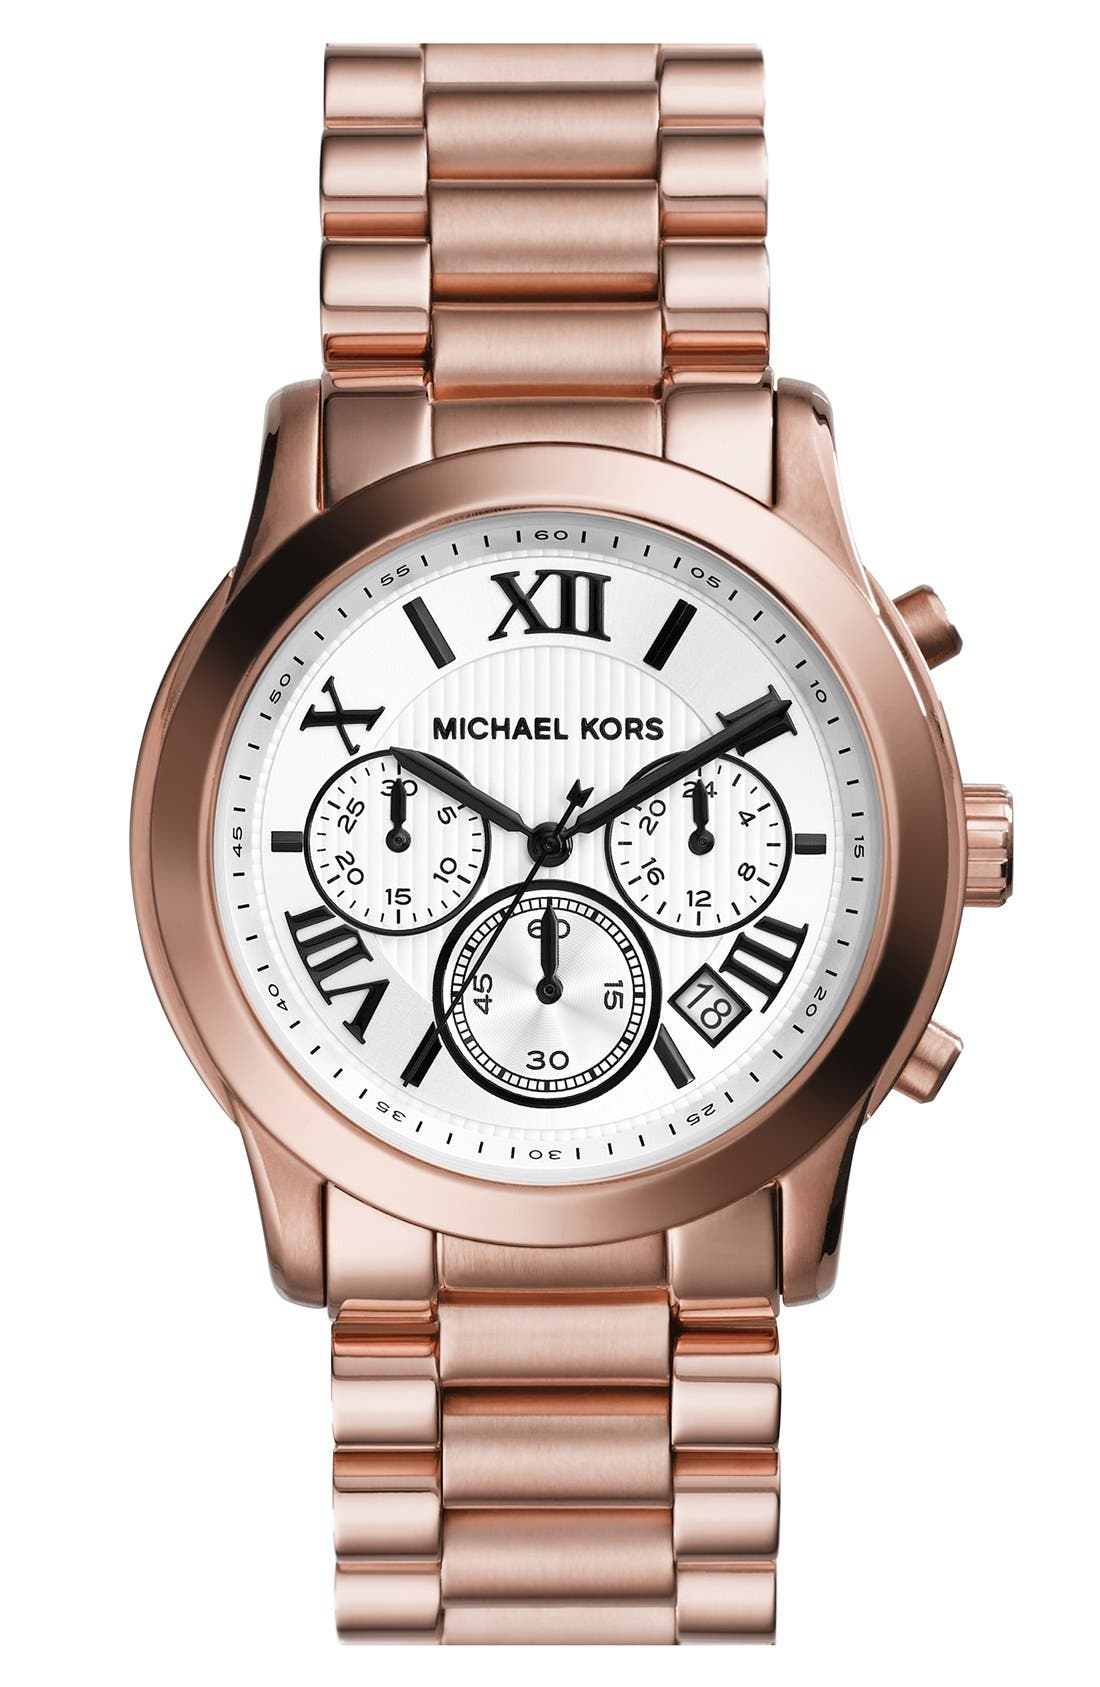 Main Image - Michael Kors 'Cooper' Chronograph Bracelet Watch, 39mm